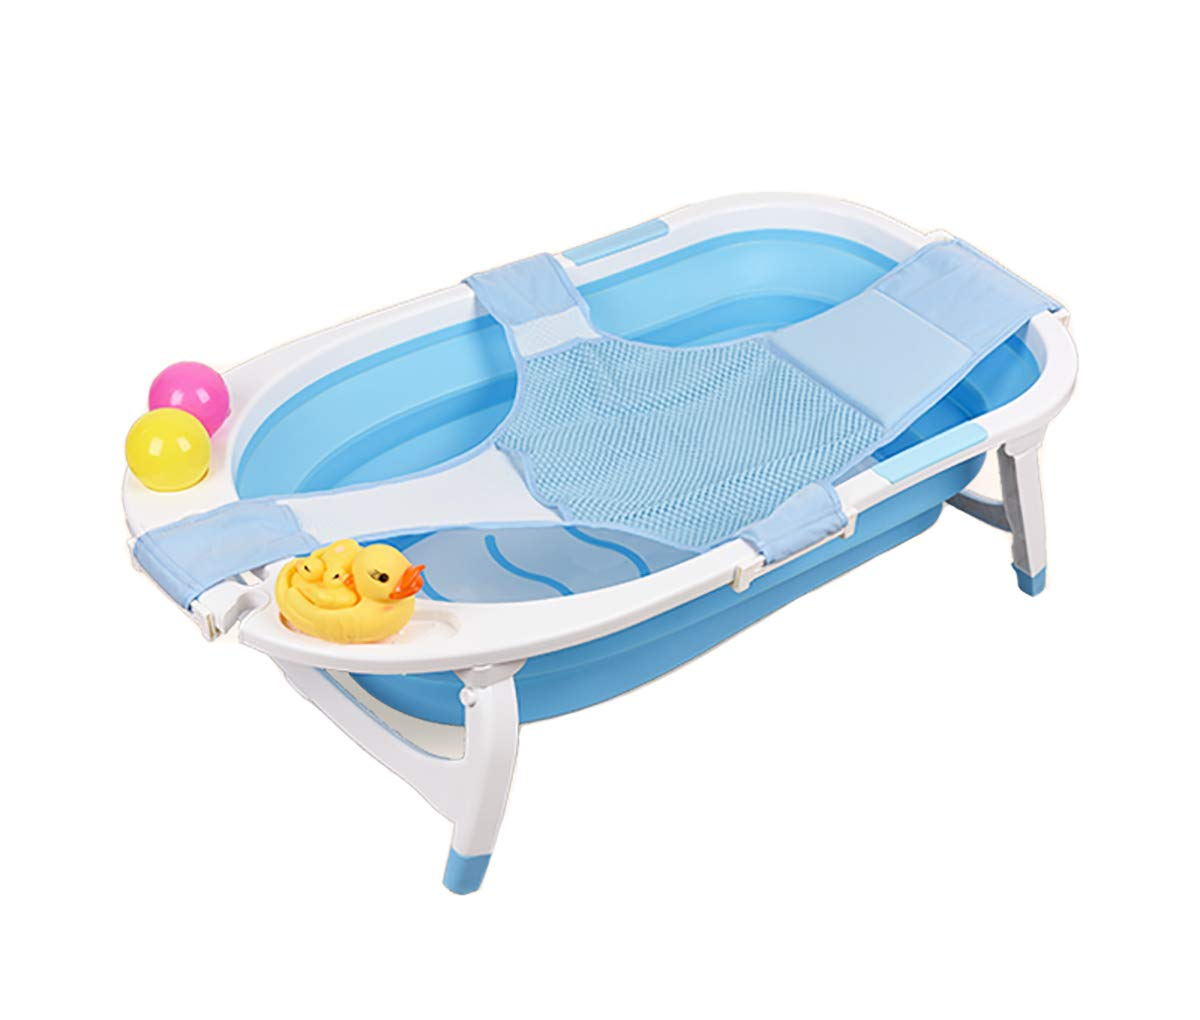 Foldable Bath Tub for Baby, Newborn, Infant   Portable Collapsible Shower Basin, Toddler Tub with Sling 32 X 19.5 X 9 inch by CreFutre